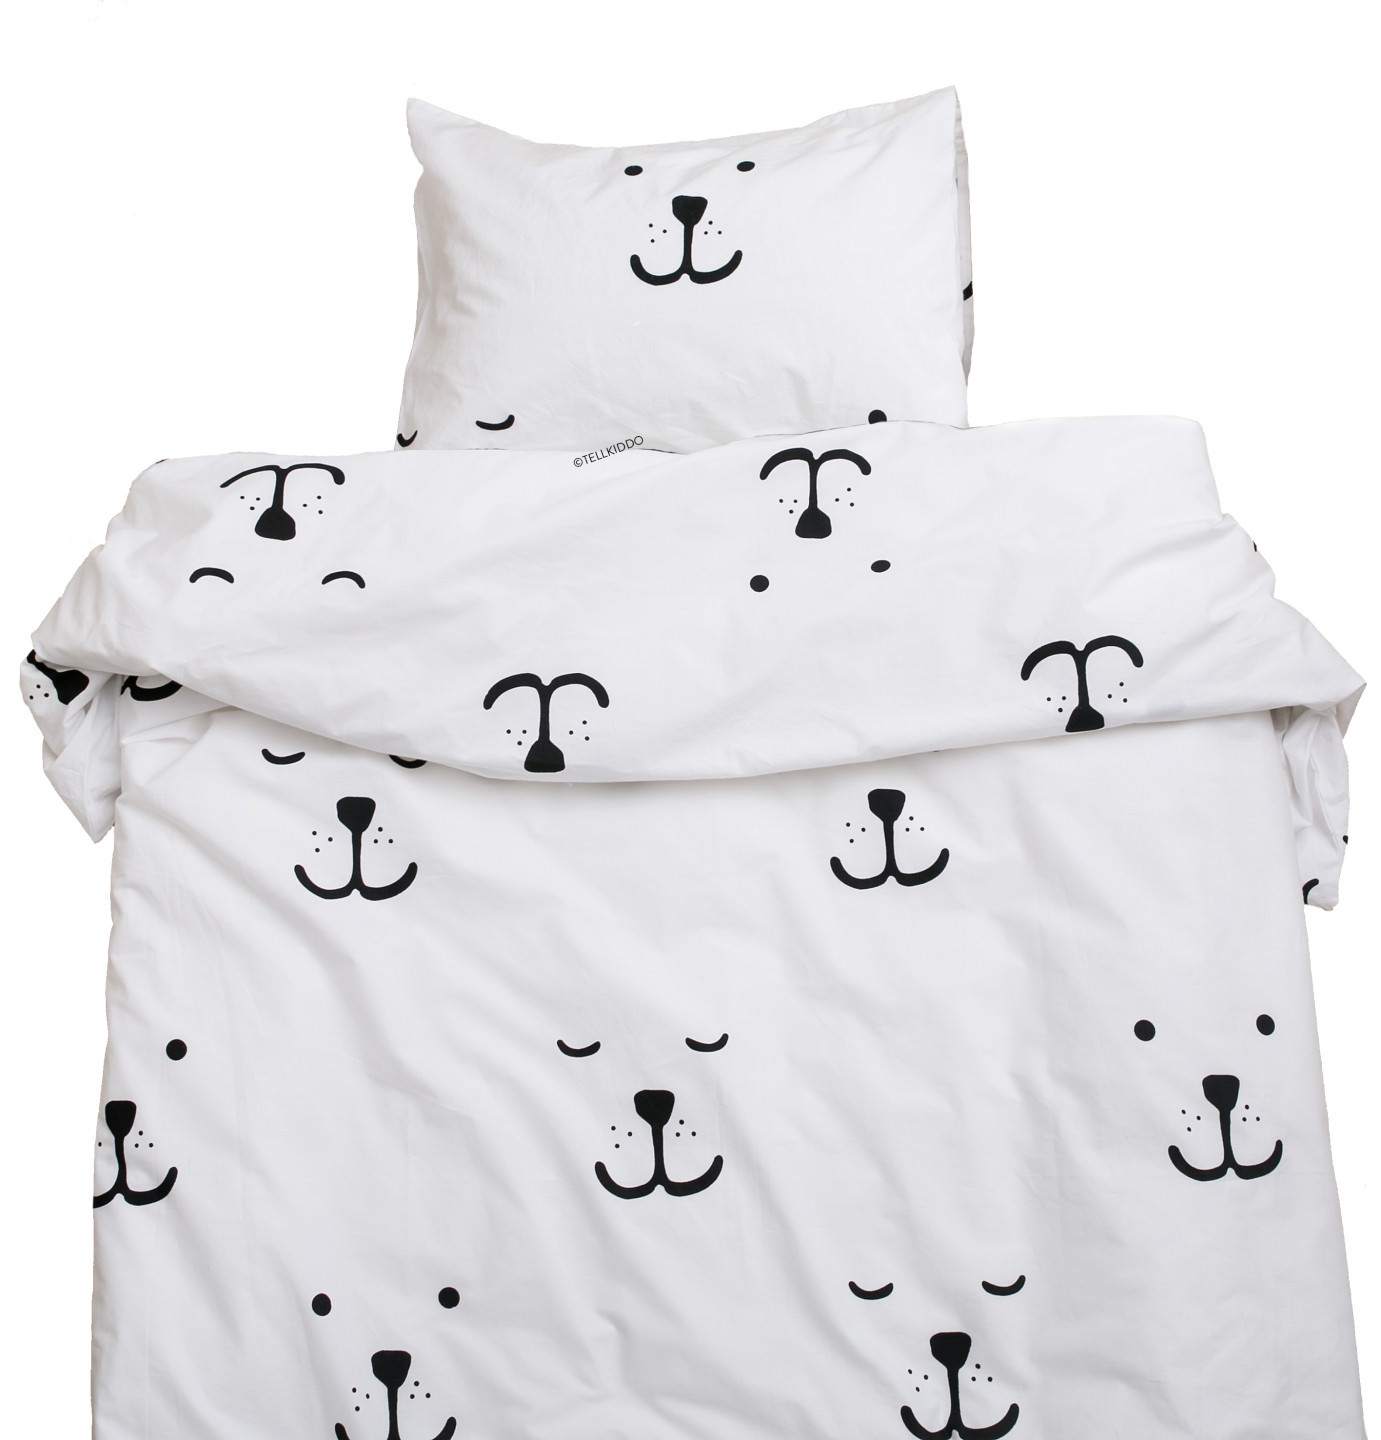 Bedding-set.jpg